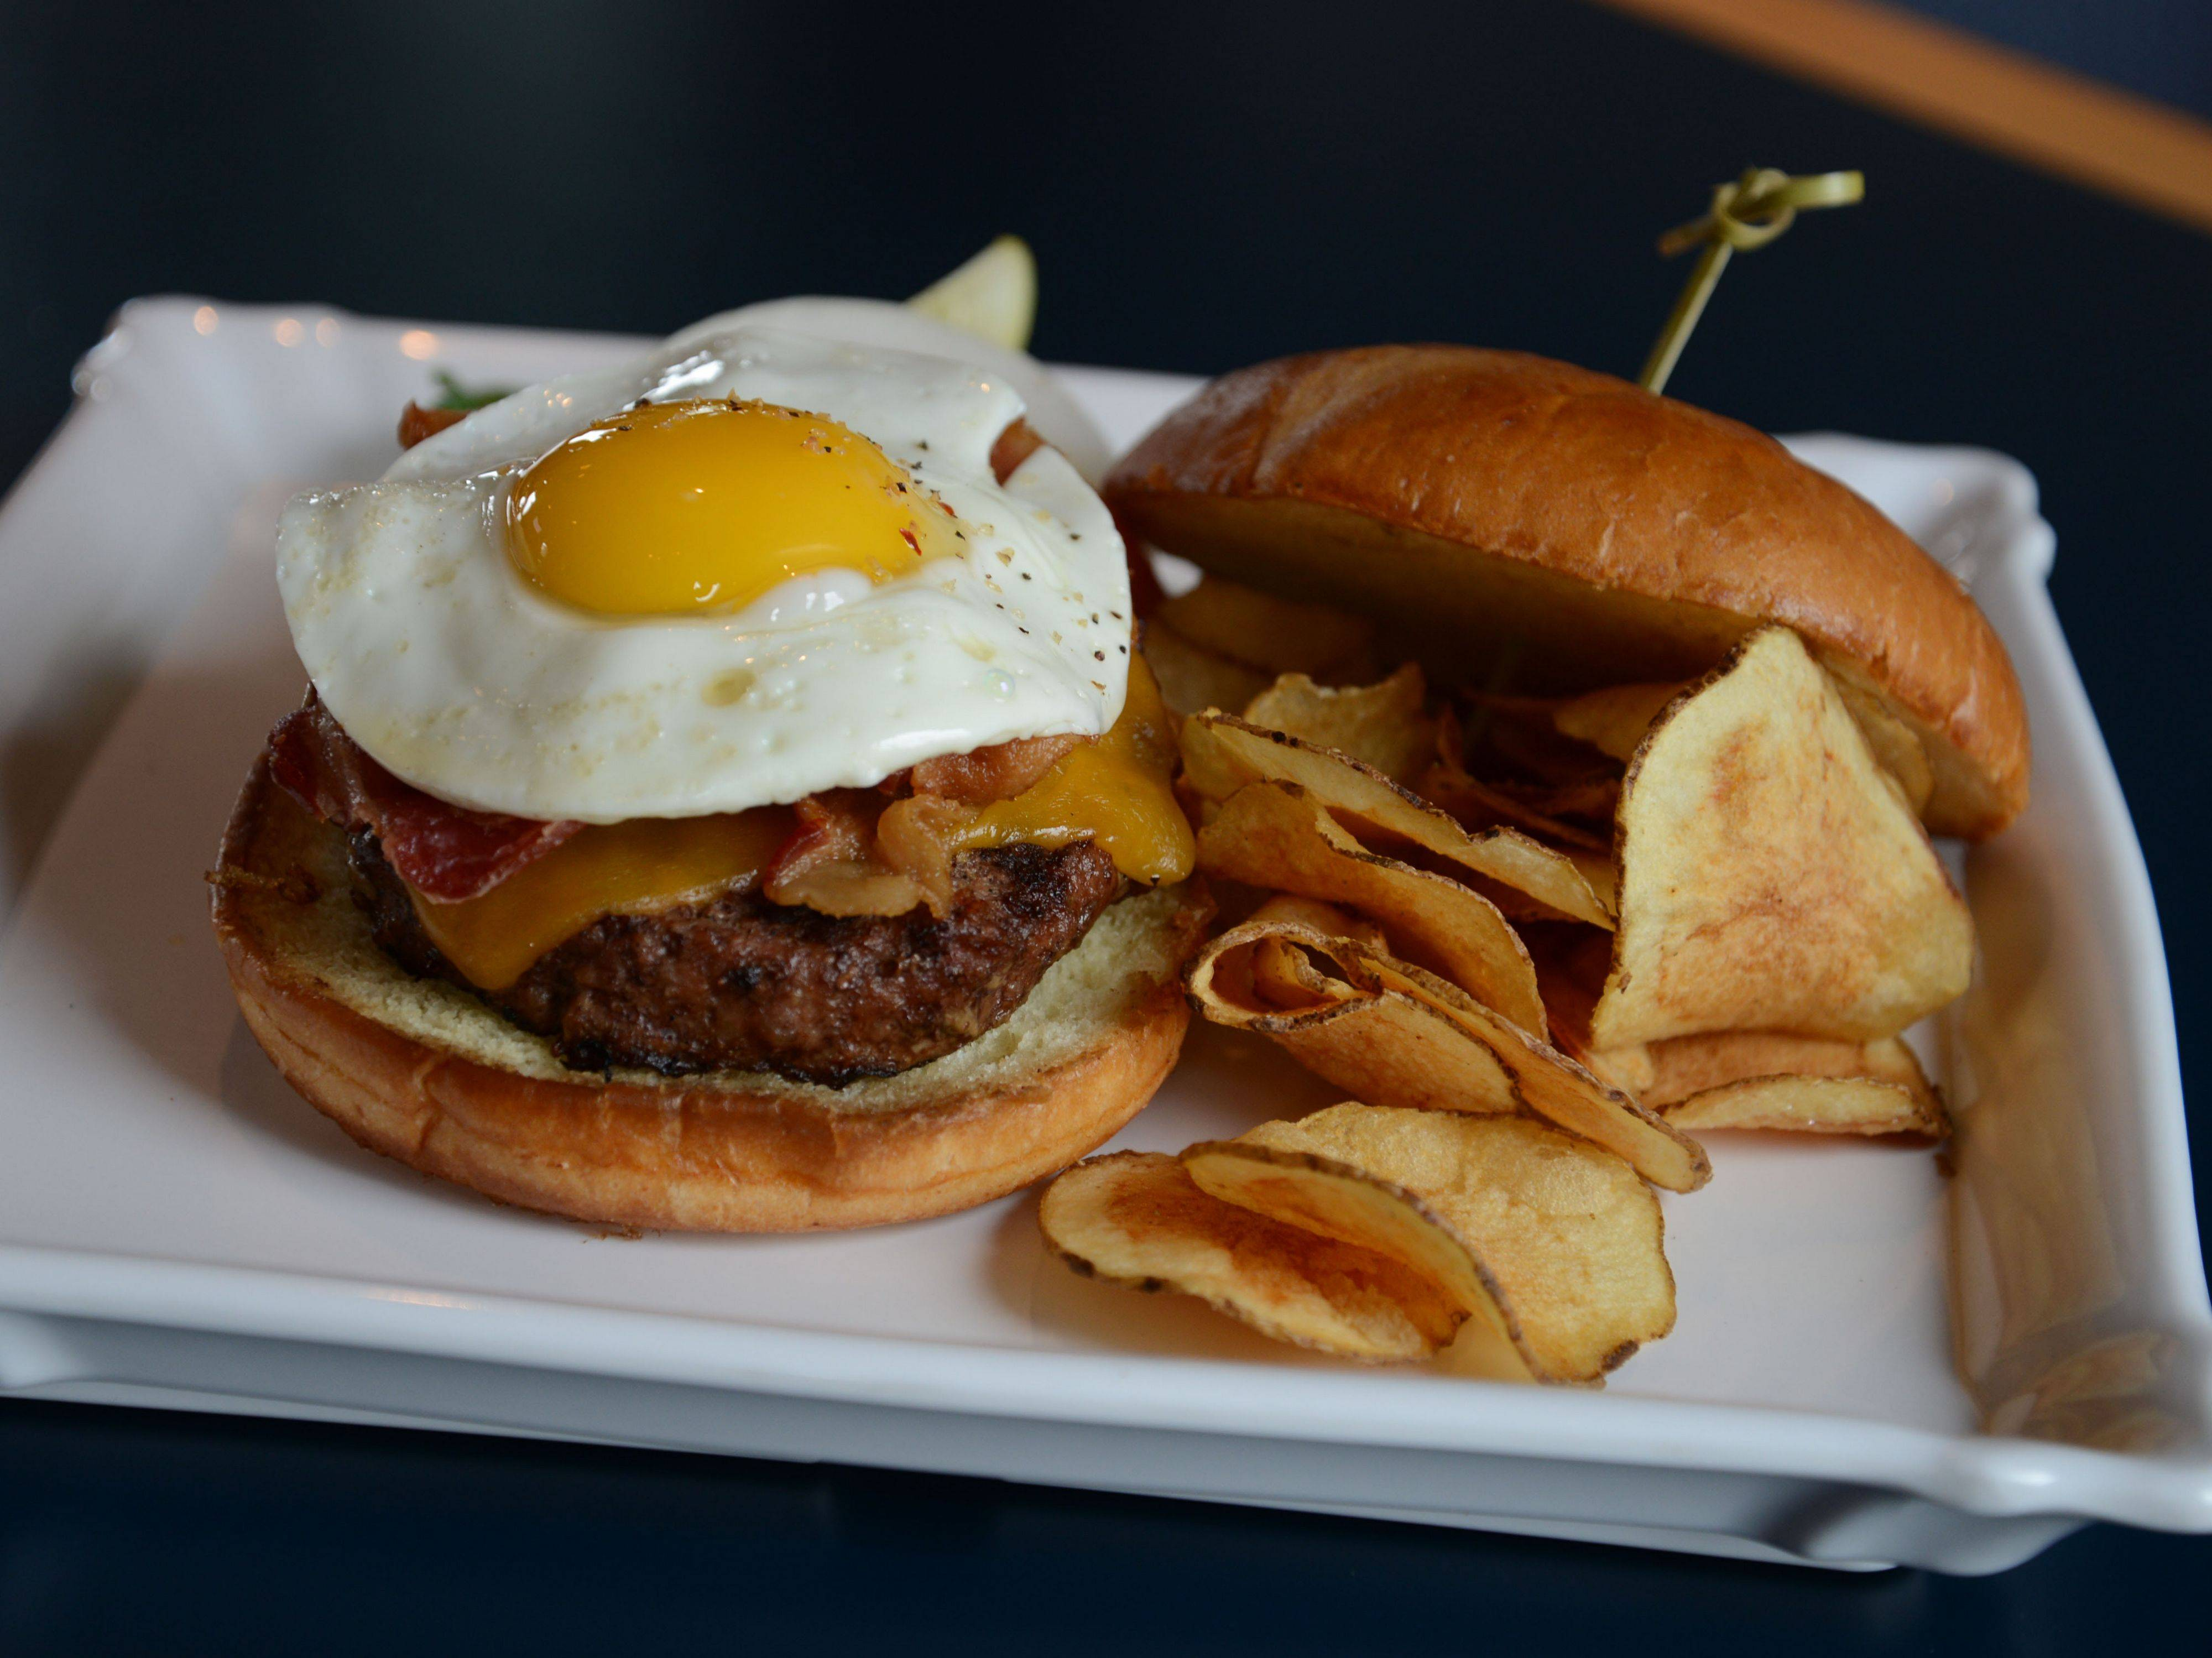 Whether or not you score one on the links, you can enjoy a Hole-in-One Burger at McChesney's Pub & Grill at Prairie Landing Golf Club in West Chicago.